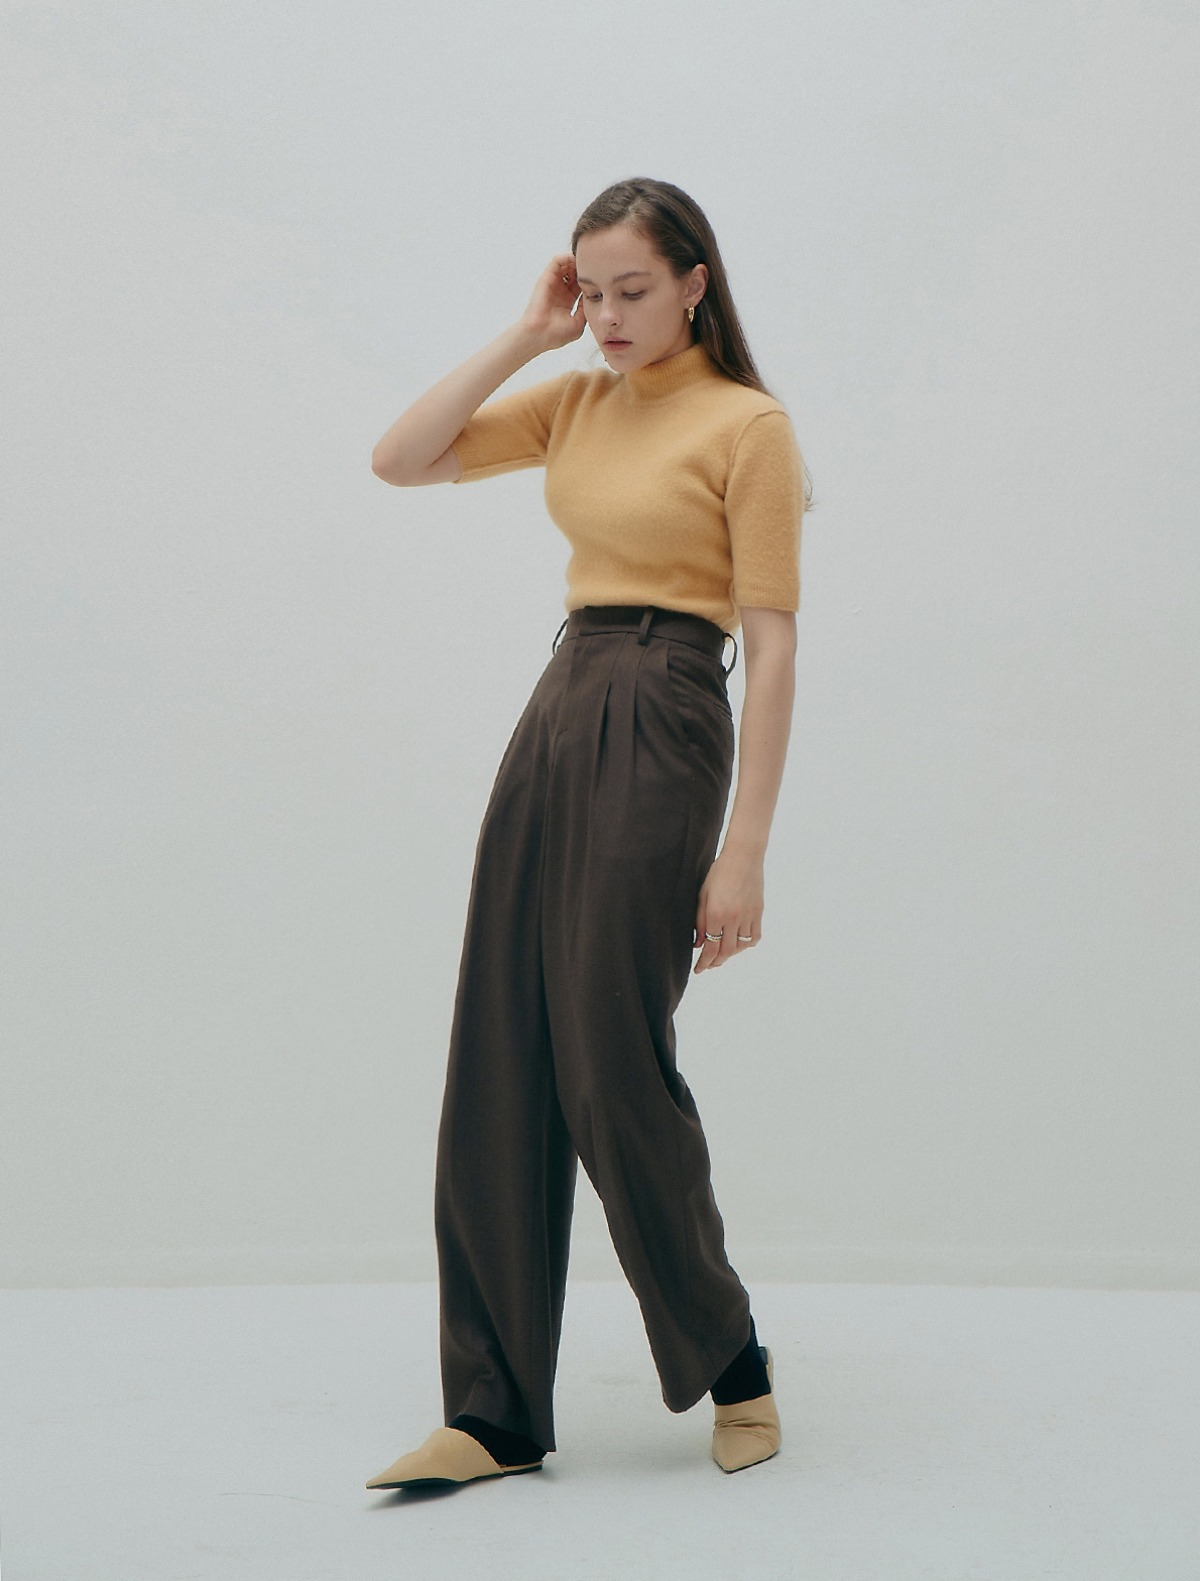 4th REORDER · 2 Pleats Wide-Leg Trousers (Brown)